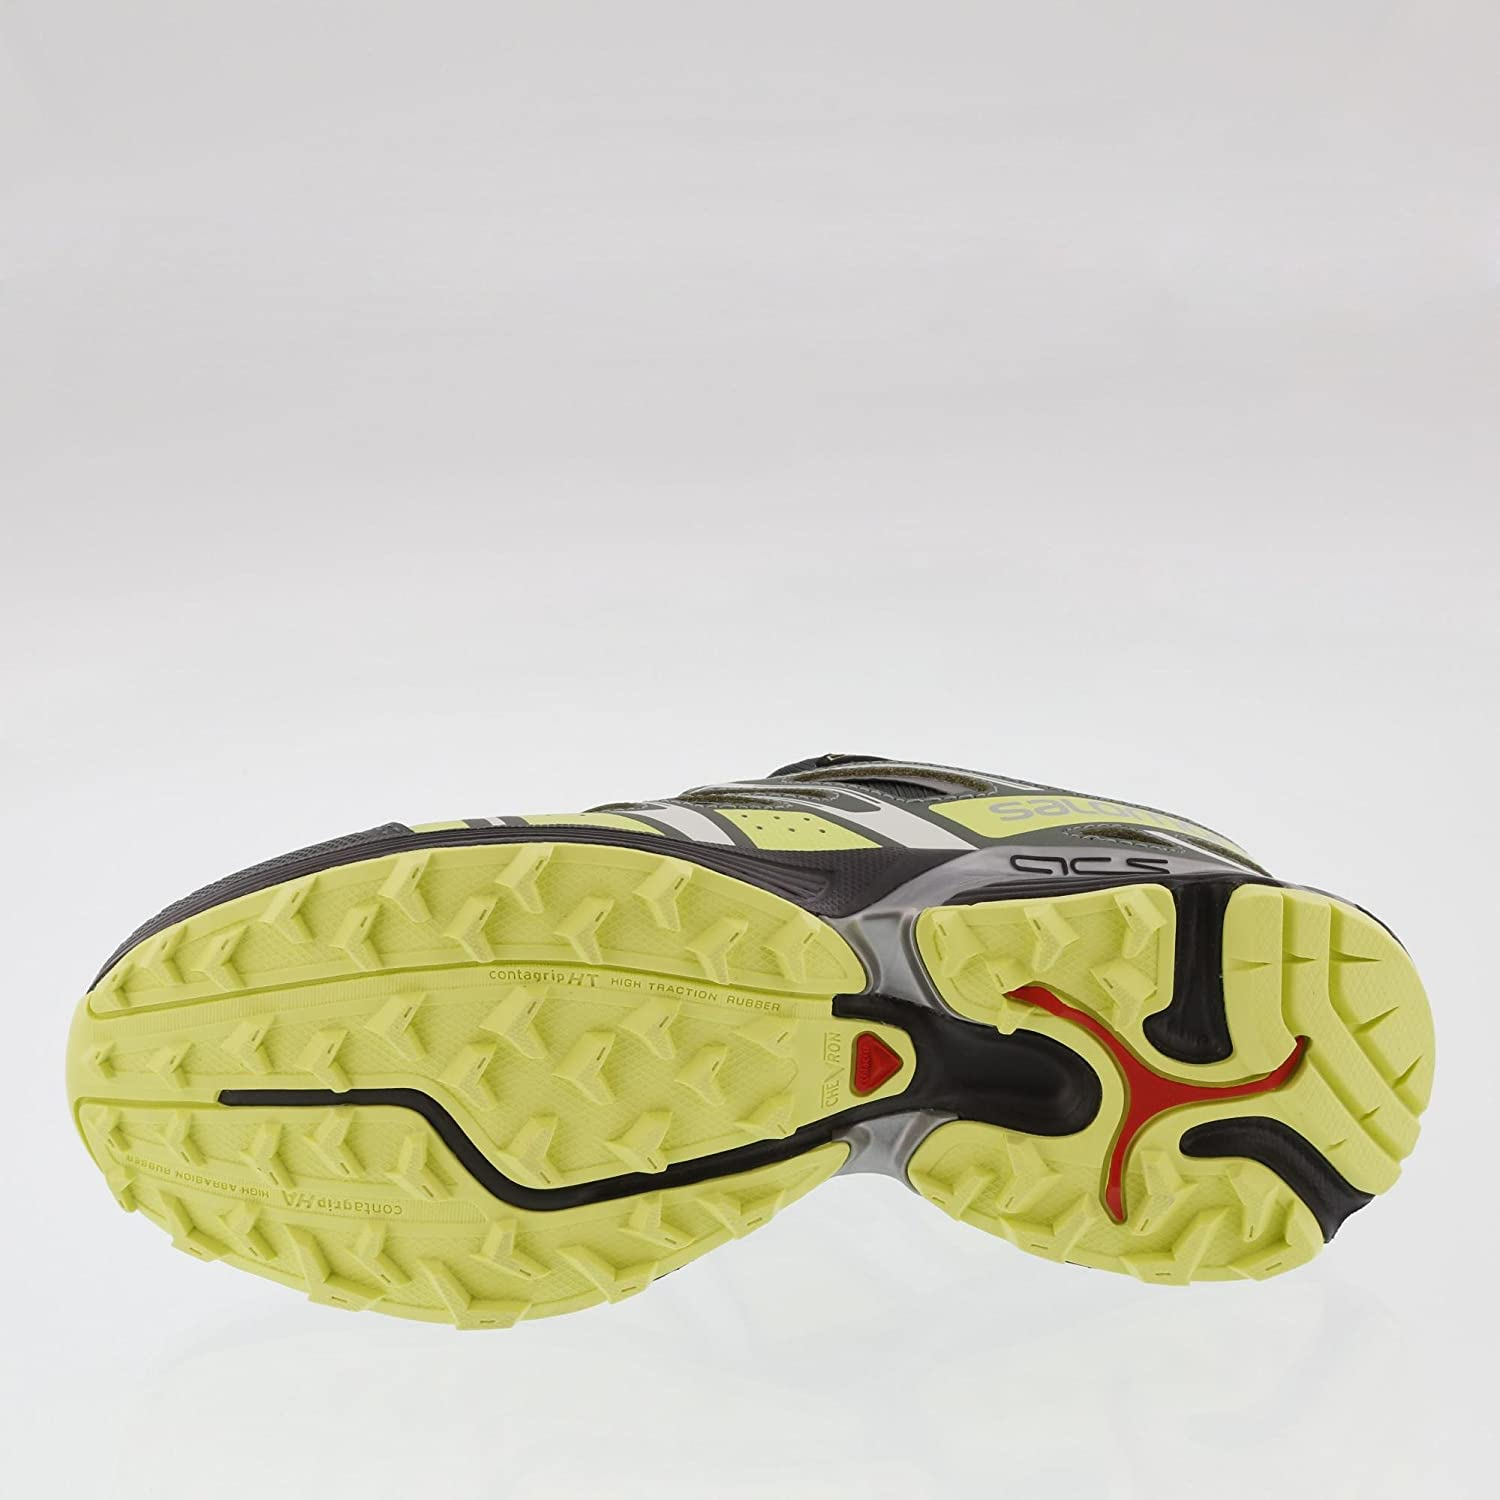 low priced 9ddad 51661 Salomon XT Hornet GTX Women s Trail Running Shoes - 8.5  Amazon.co.uk   Shoes   Bags